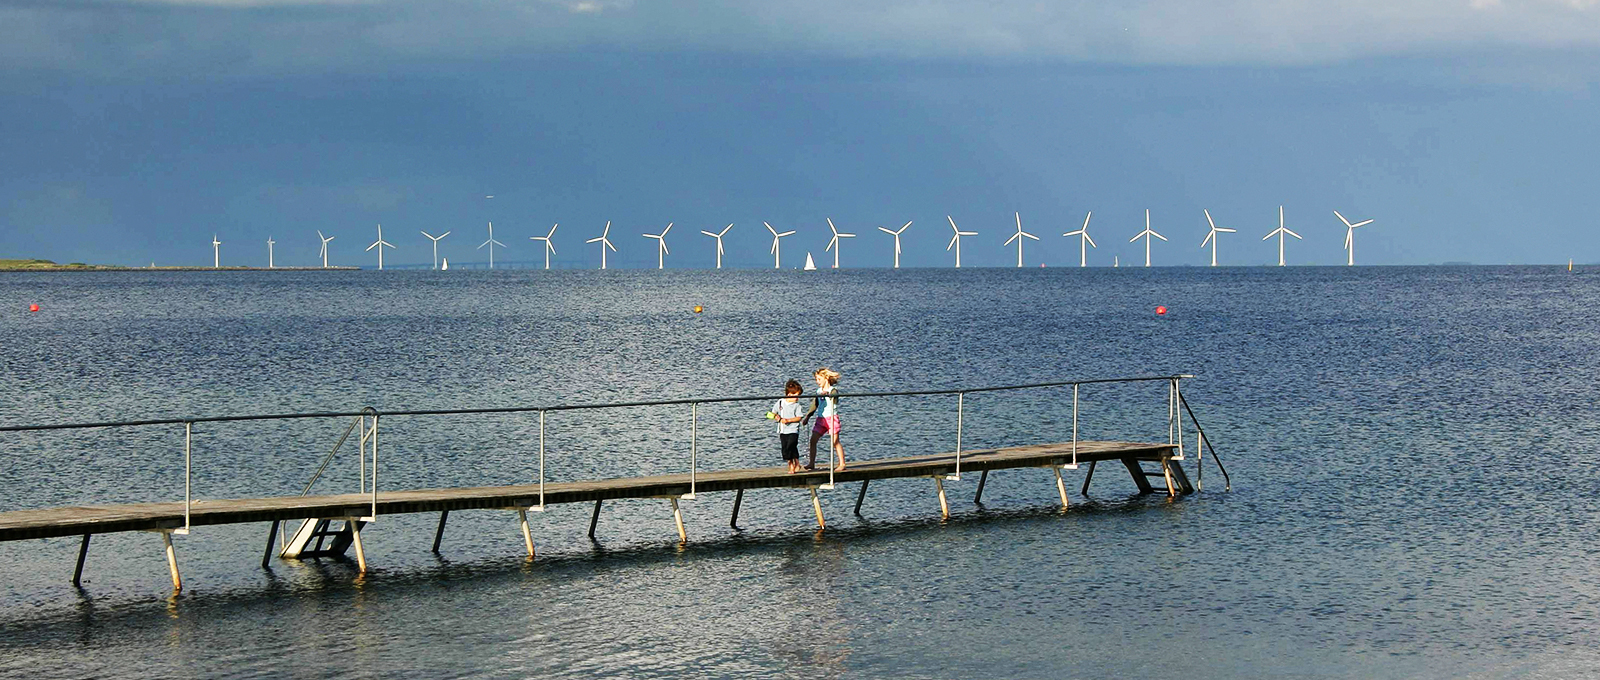 Prysmian secures a new project in excess of €100 M for offshore wind farm grid connections in the UK